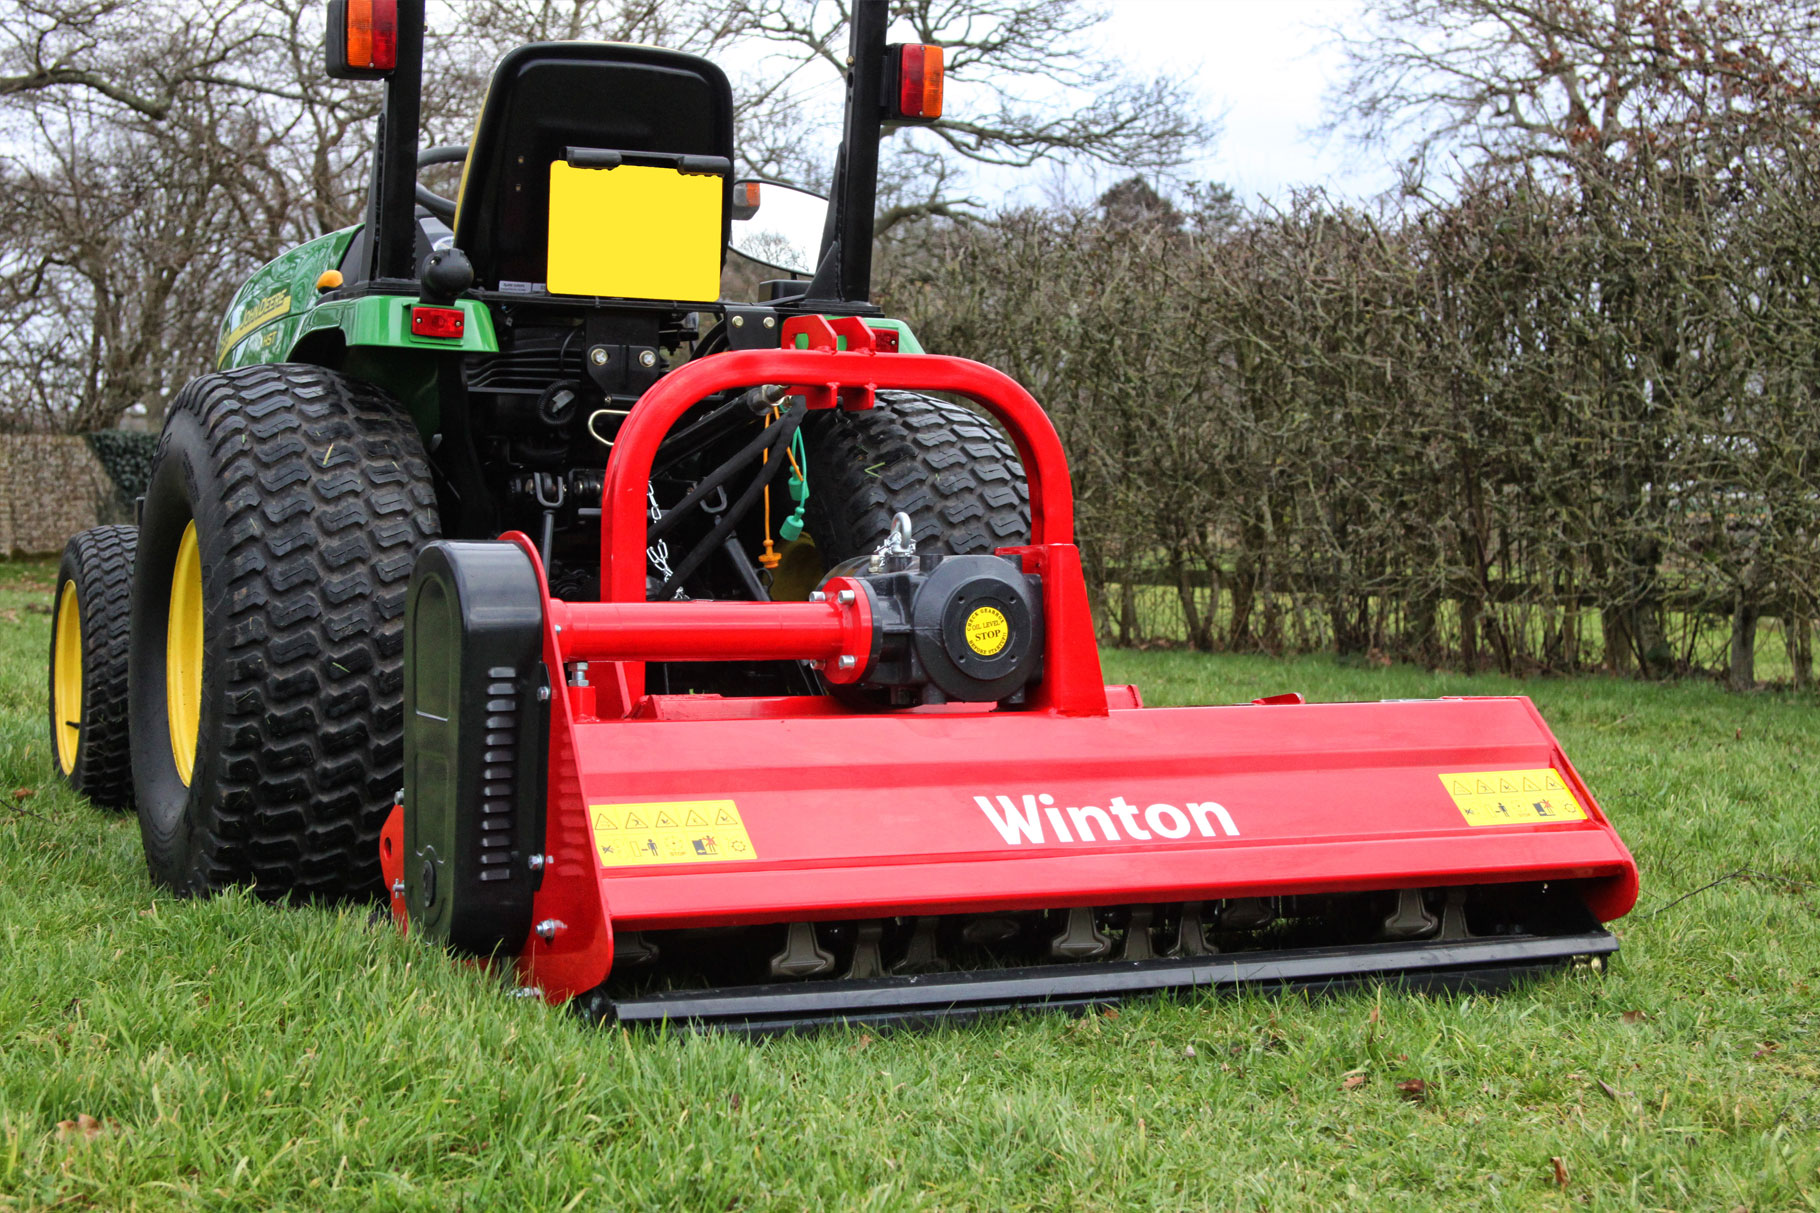 winton-whf200--2m-hydraulic-offset-flail-mower-with-heavy-duty-hammer-flails